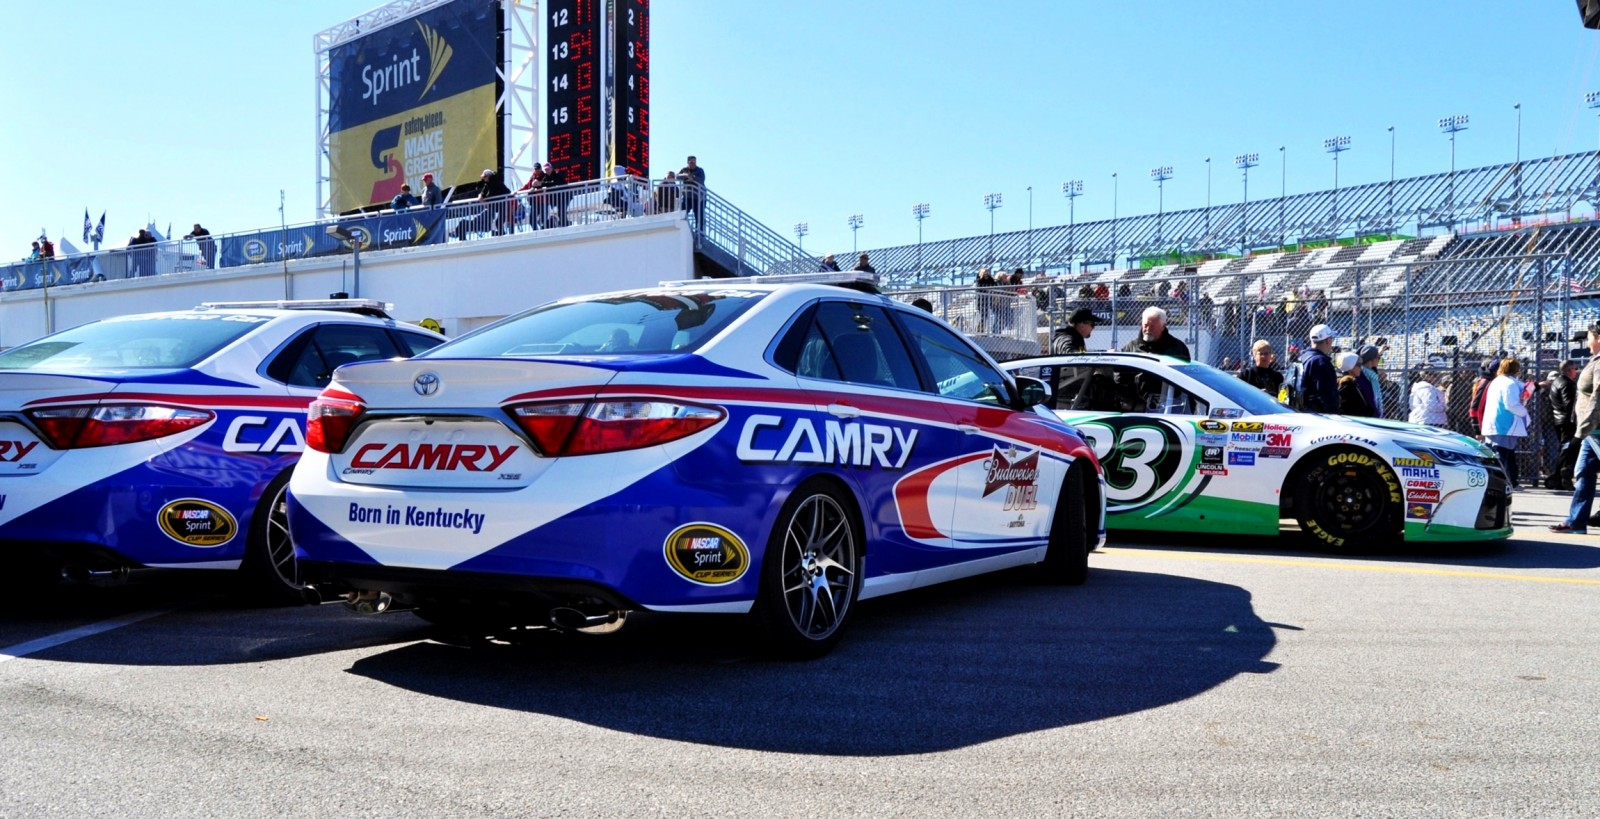 2015 Toyota Camry - DAYTONA 500 Official Pace Car 19